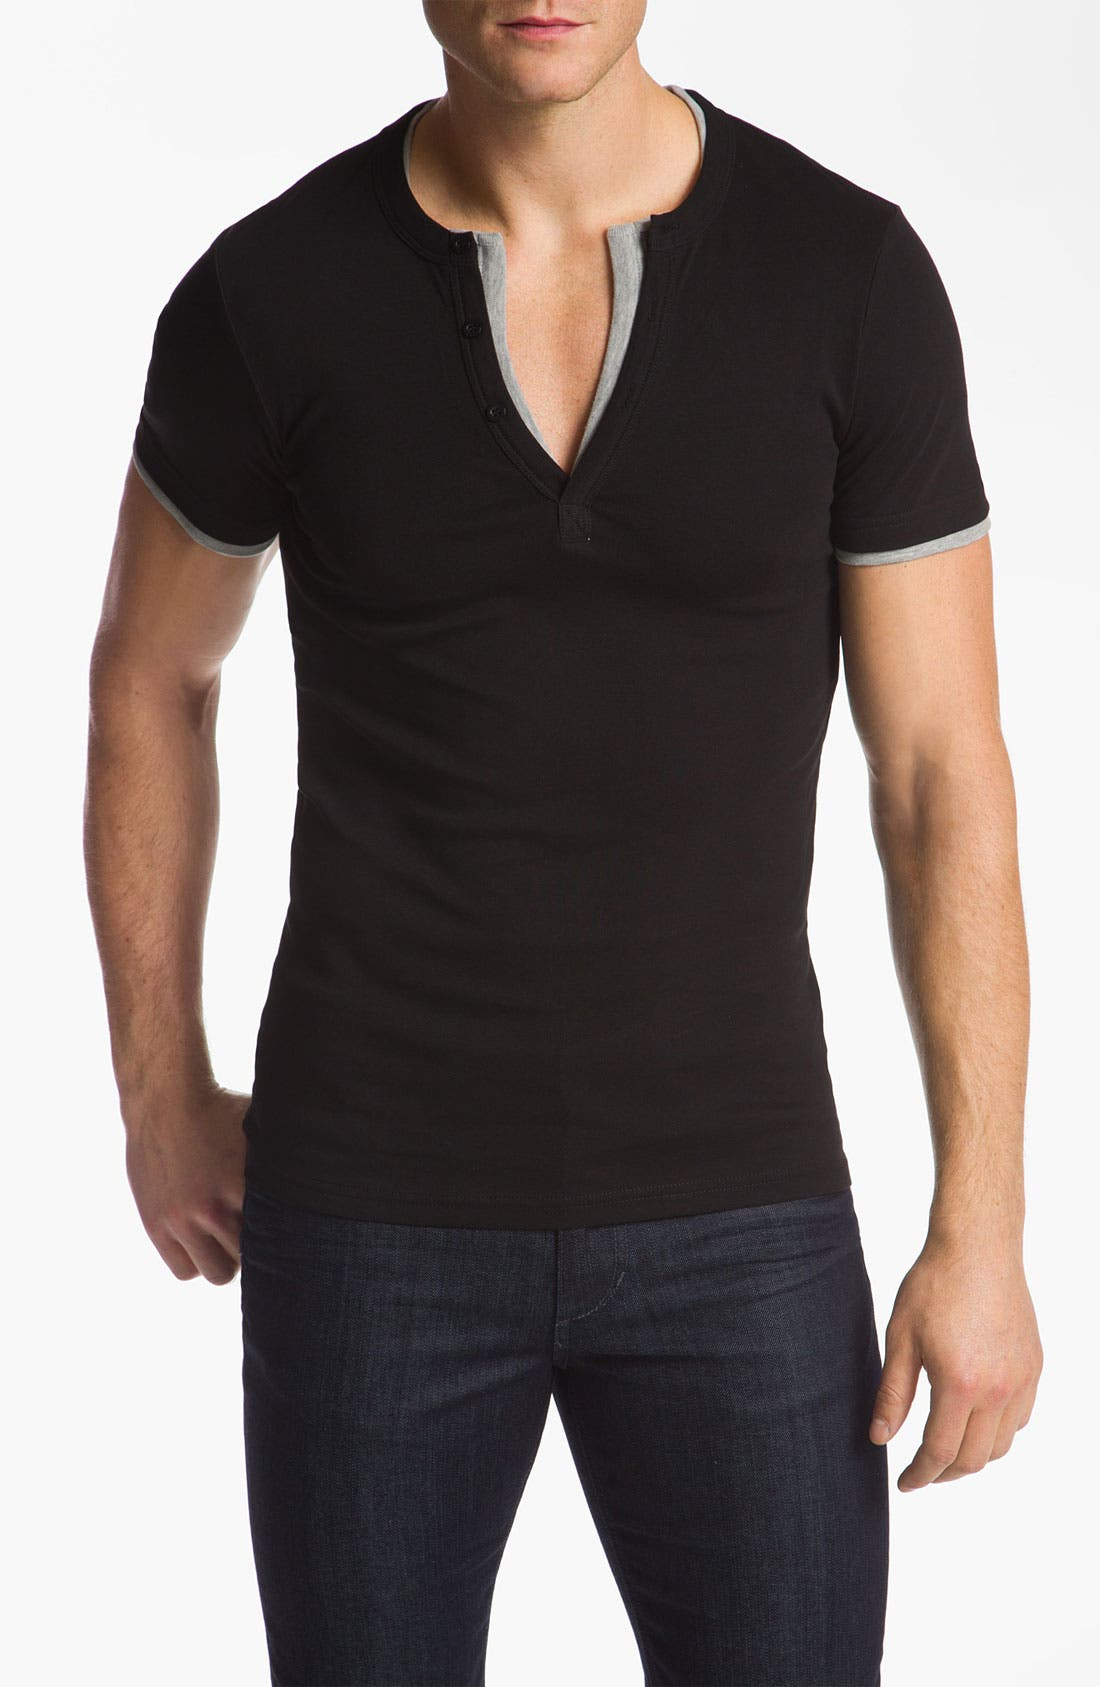 Alternate Image 1 Selected - J.C. Rags Extra Trim Fit Short Sleeve Henley